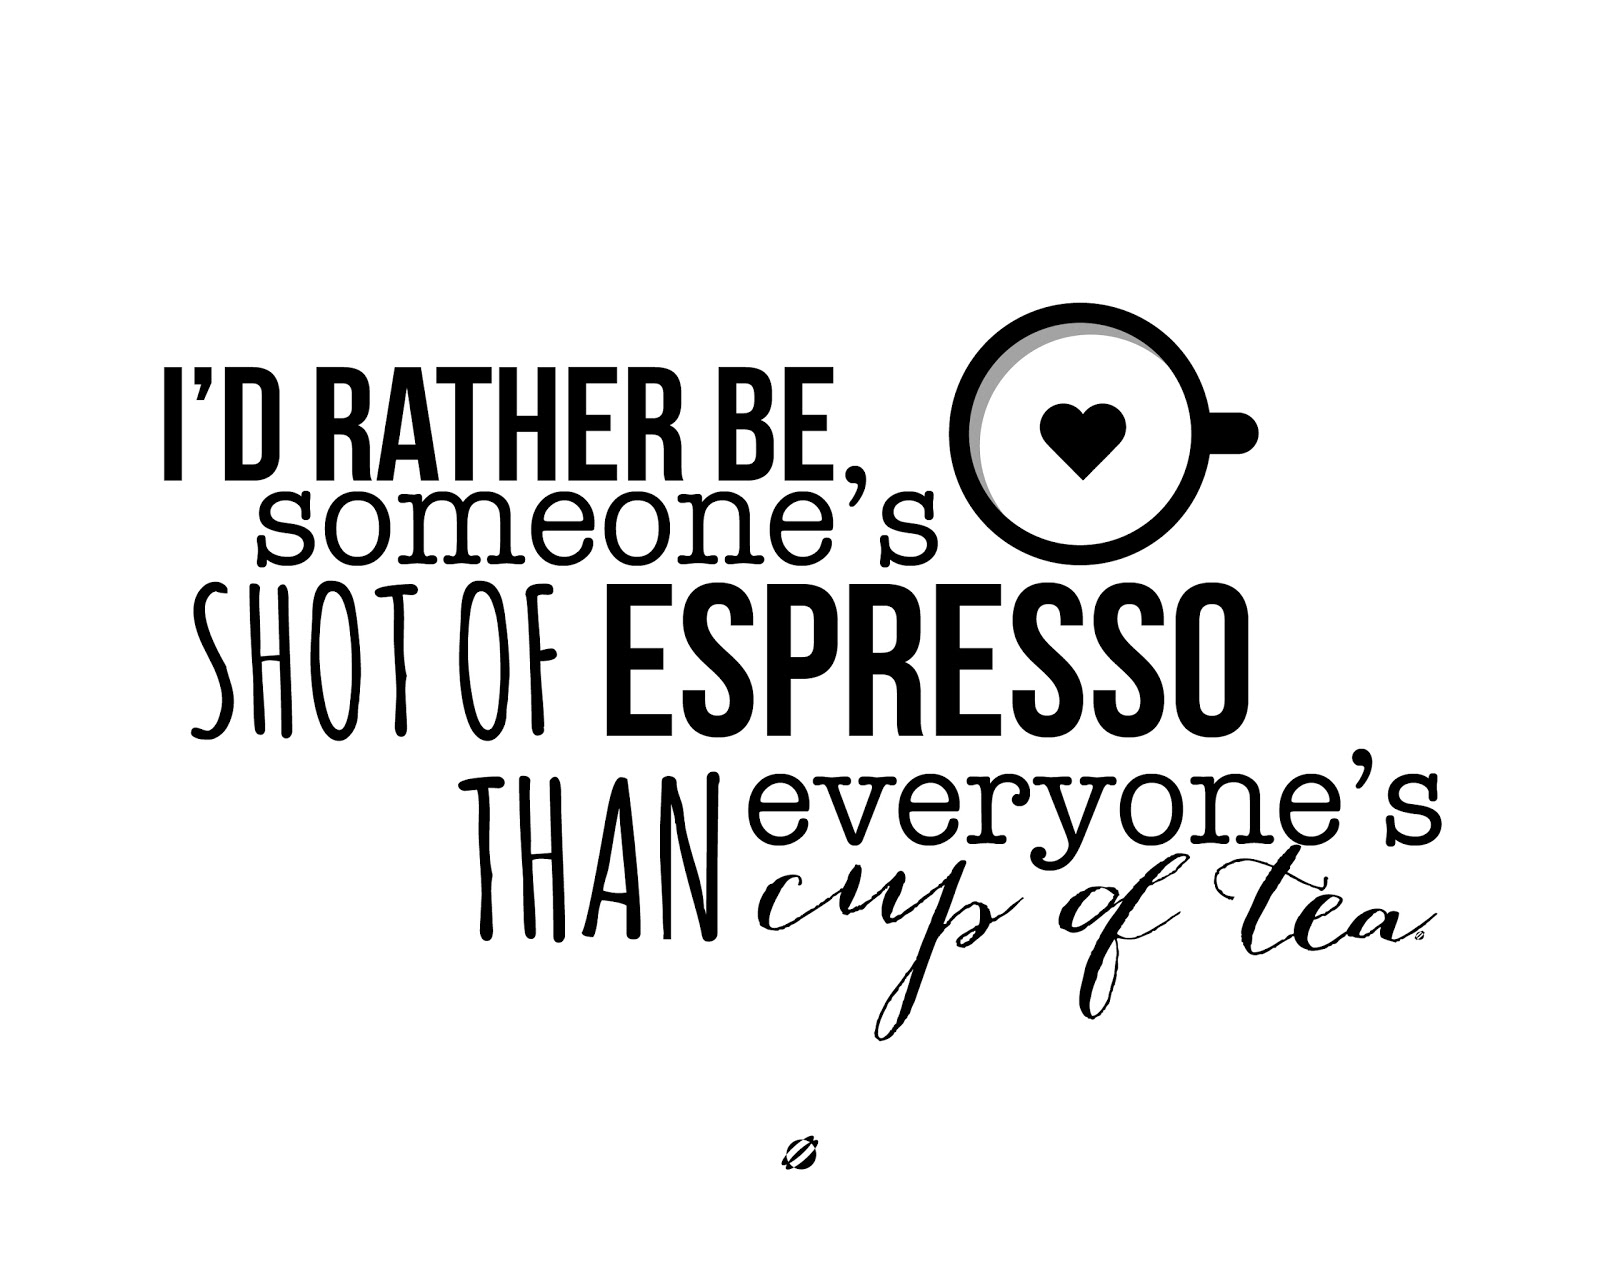 LostBumblebee 2013- Rather BE ESPRESSO - FREE PRINTABLE